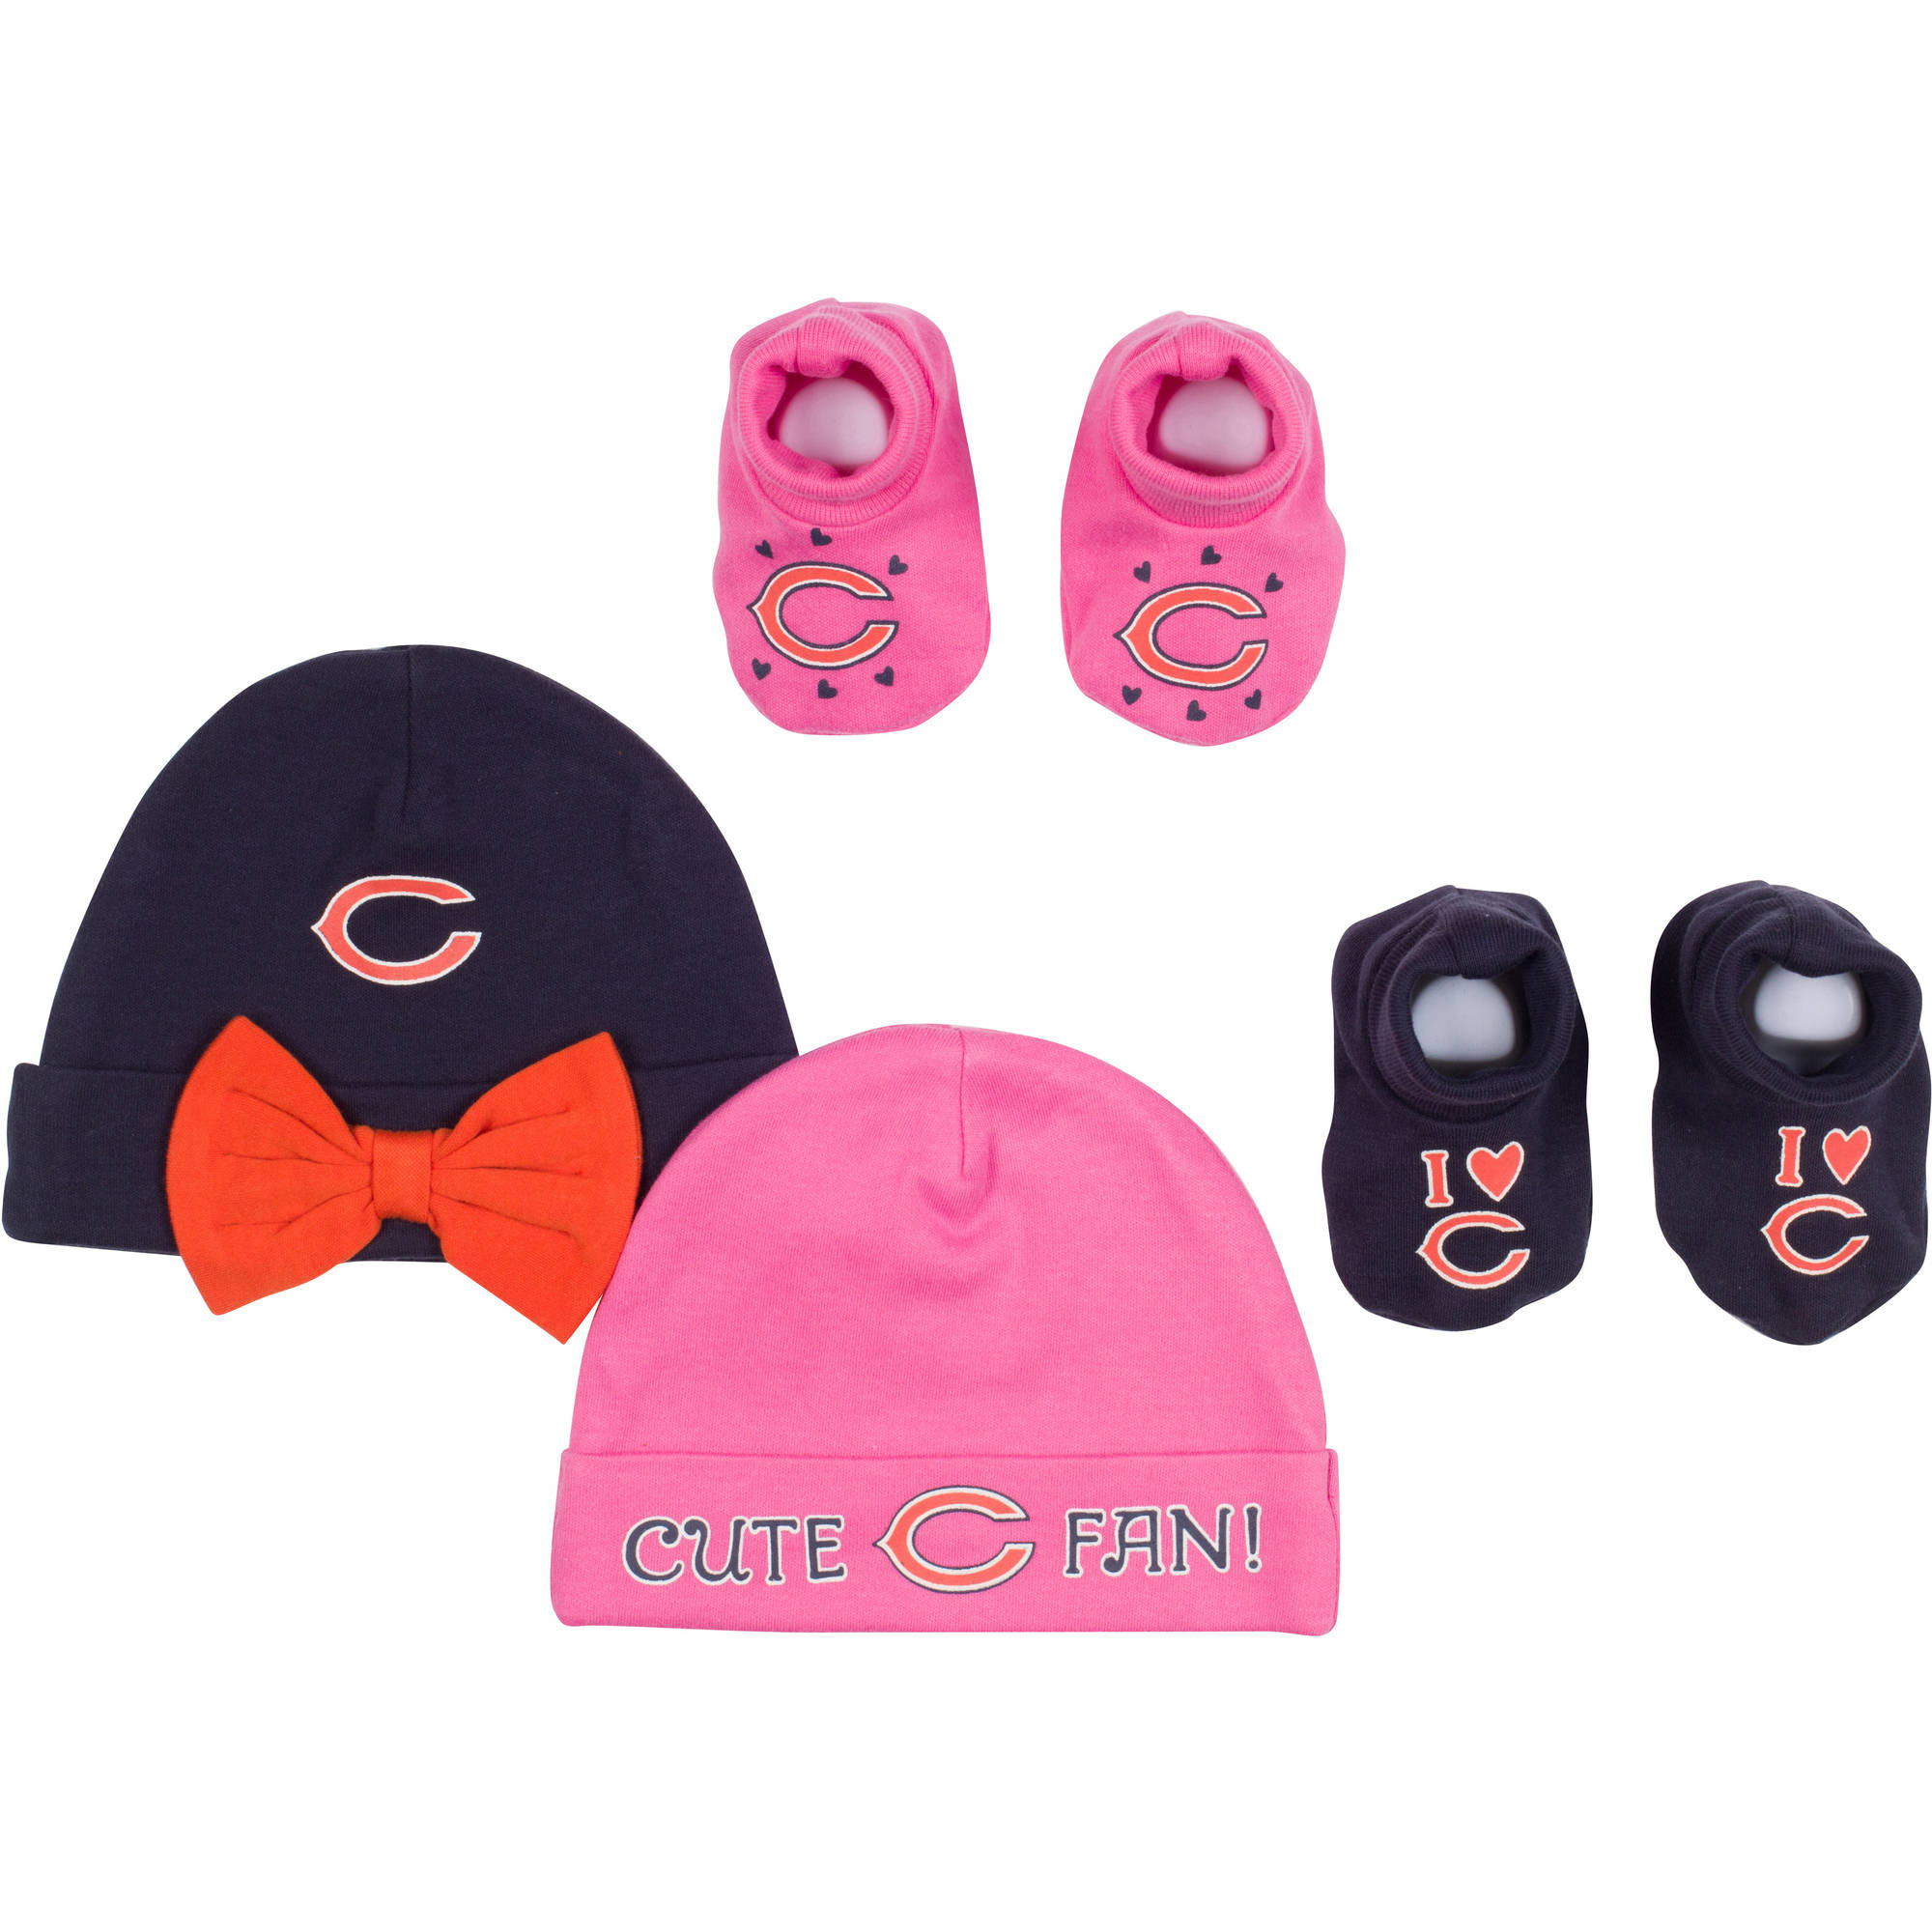 NFL Chicago Bears Baby Girls Accessory Set, 2 Caps and 2 Booties, 4-Piece